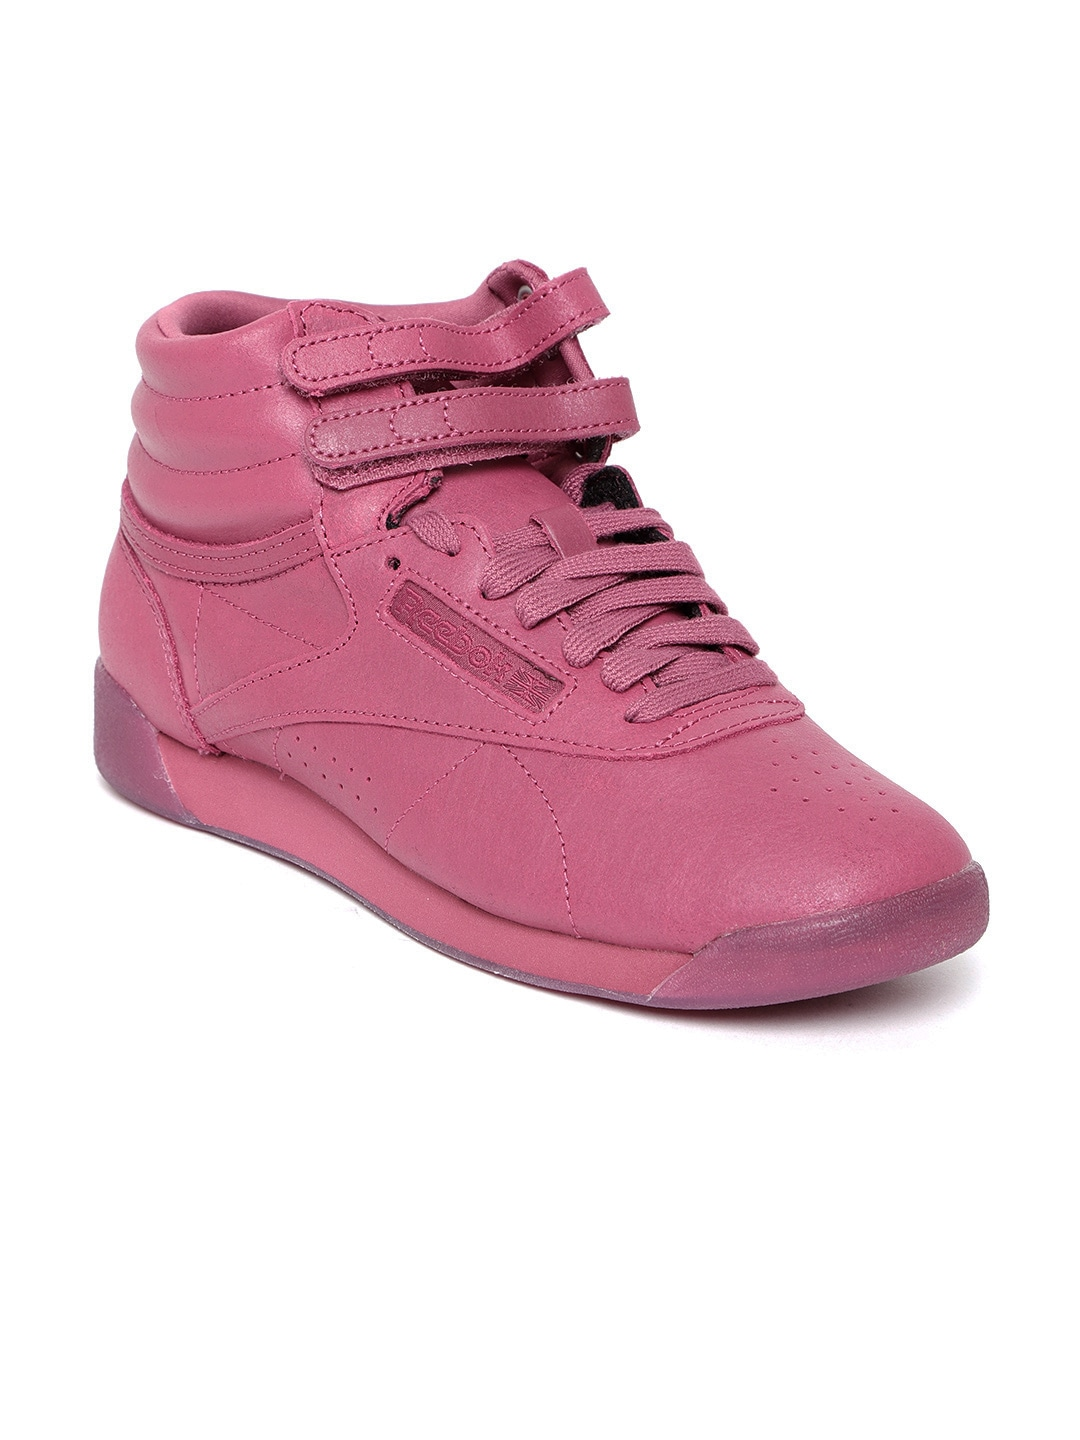 5d2cd7d2256 Reebok Casual Shoes - Buy Reebok Casual Shoes Online in India